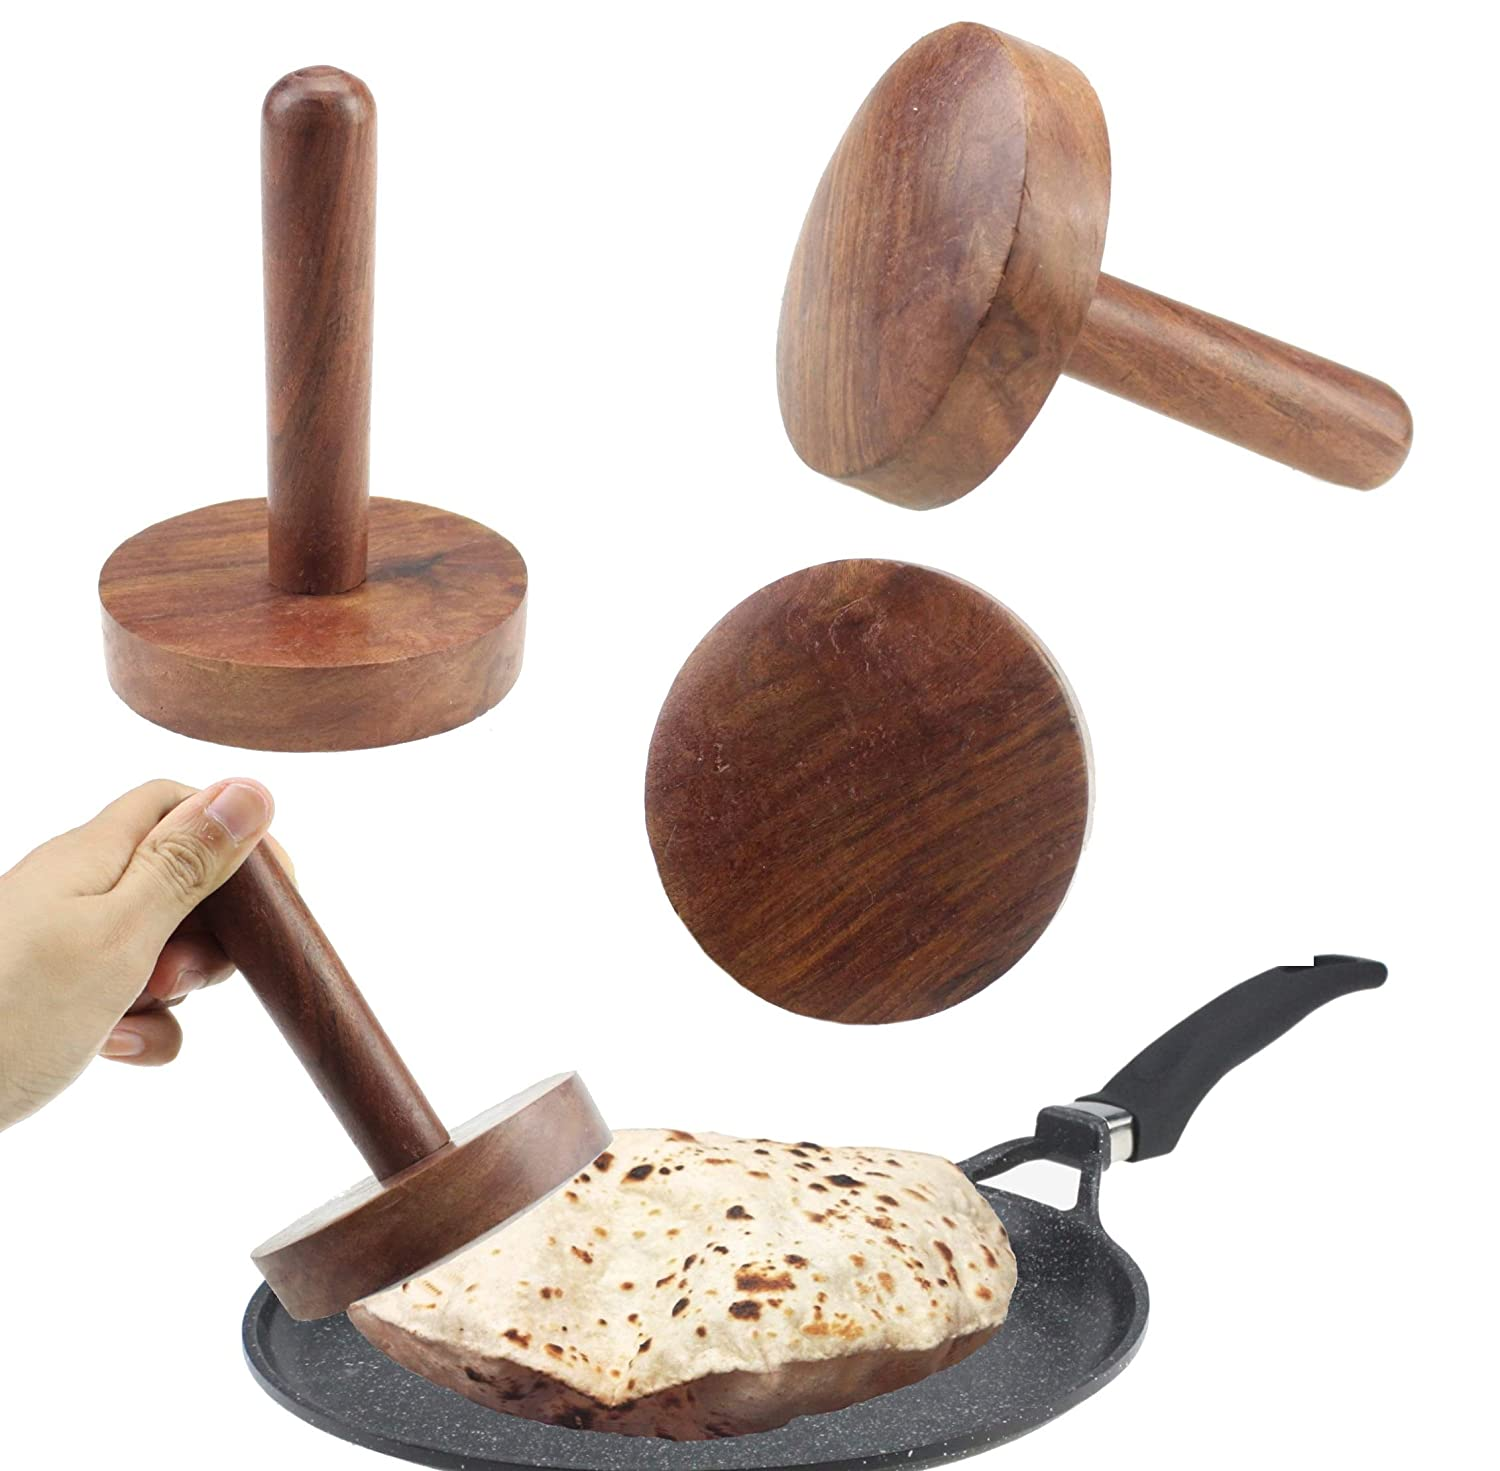 Wooden Chapati Press Roti Fluffer Extra Strong Paratha Indian Datta Press Long Life Solid Wood Dark Brown GK140 GK Global Kitchen